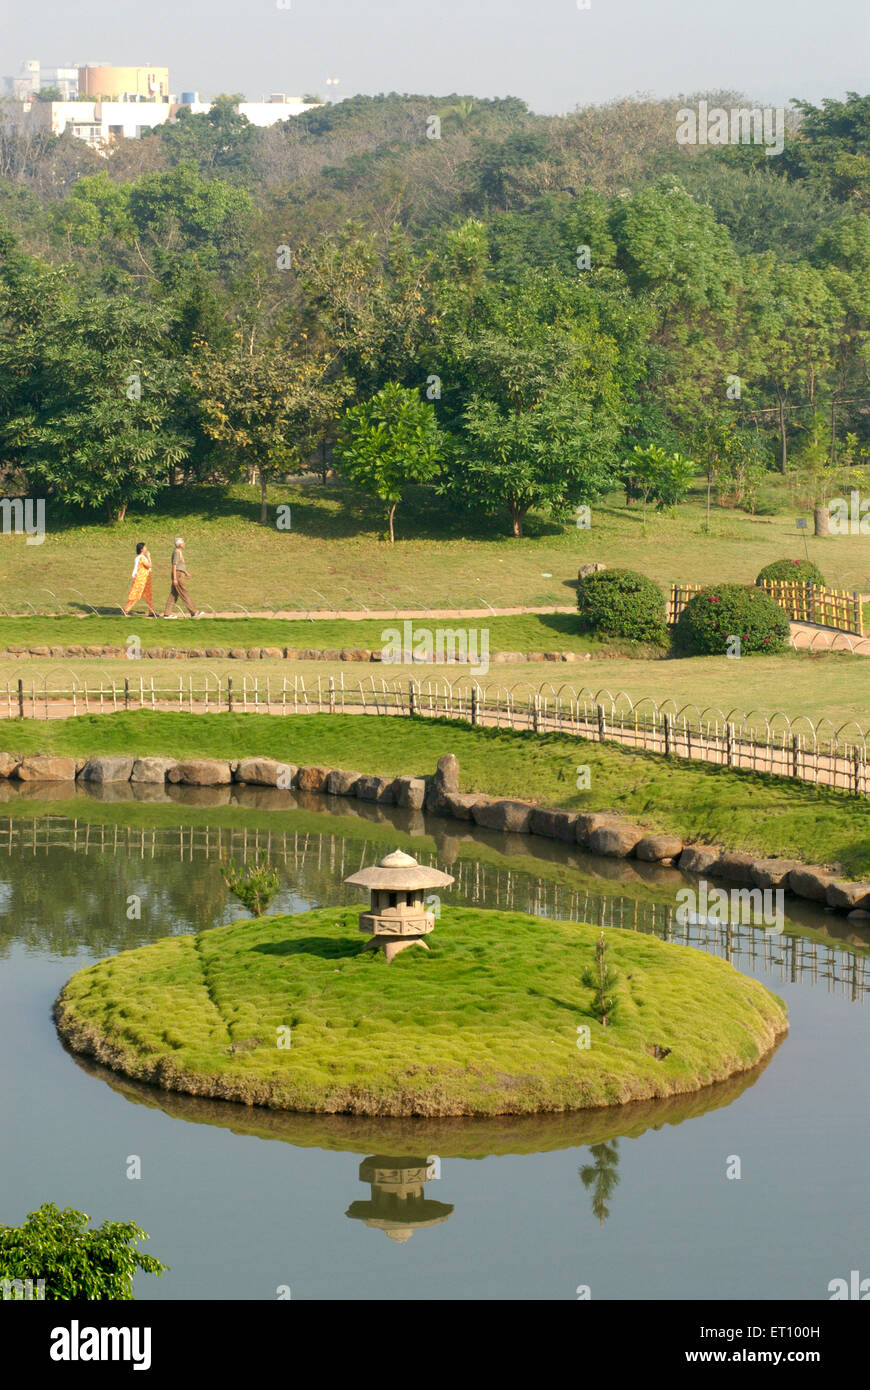 Nakanoike pond in okayama friendship or p l. deshpande garden ; Pune ; Maharashtra ; India - Stock Image